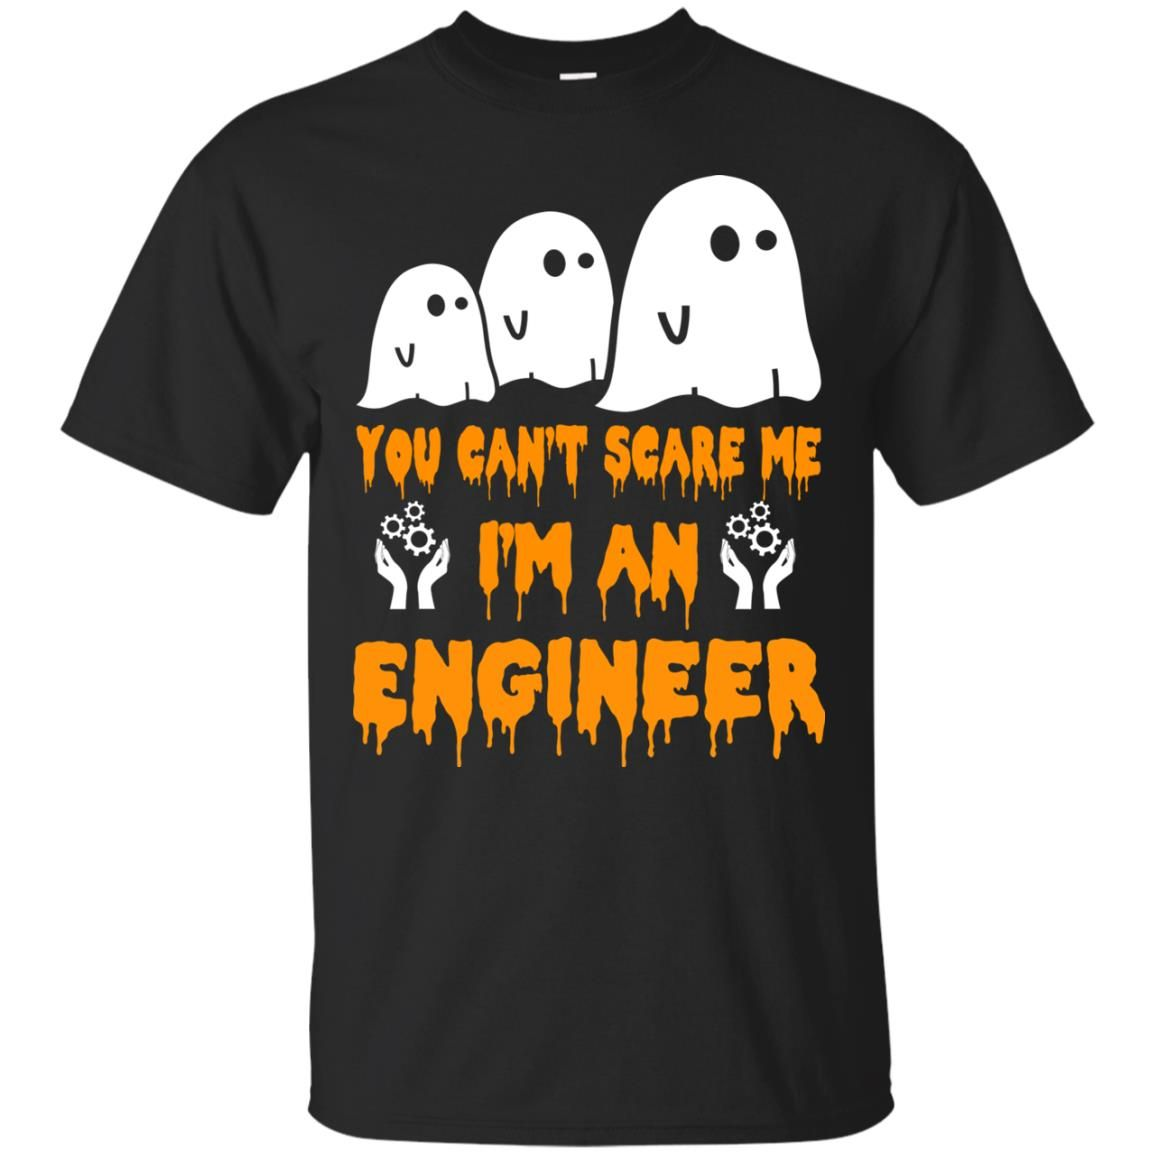 image 423 - You can't scare me I'm a Engineer shirt, hoodie, tank